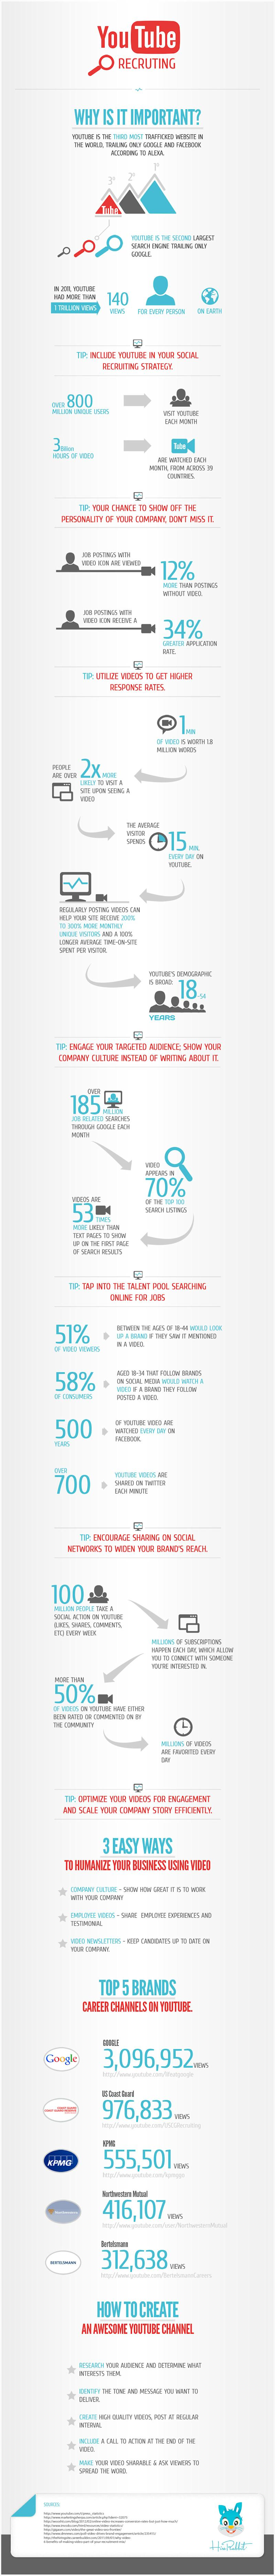 YouTube: The Secret Ingredient for Job Recruitment [INFOGRAPHIC]